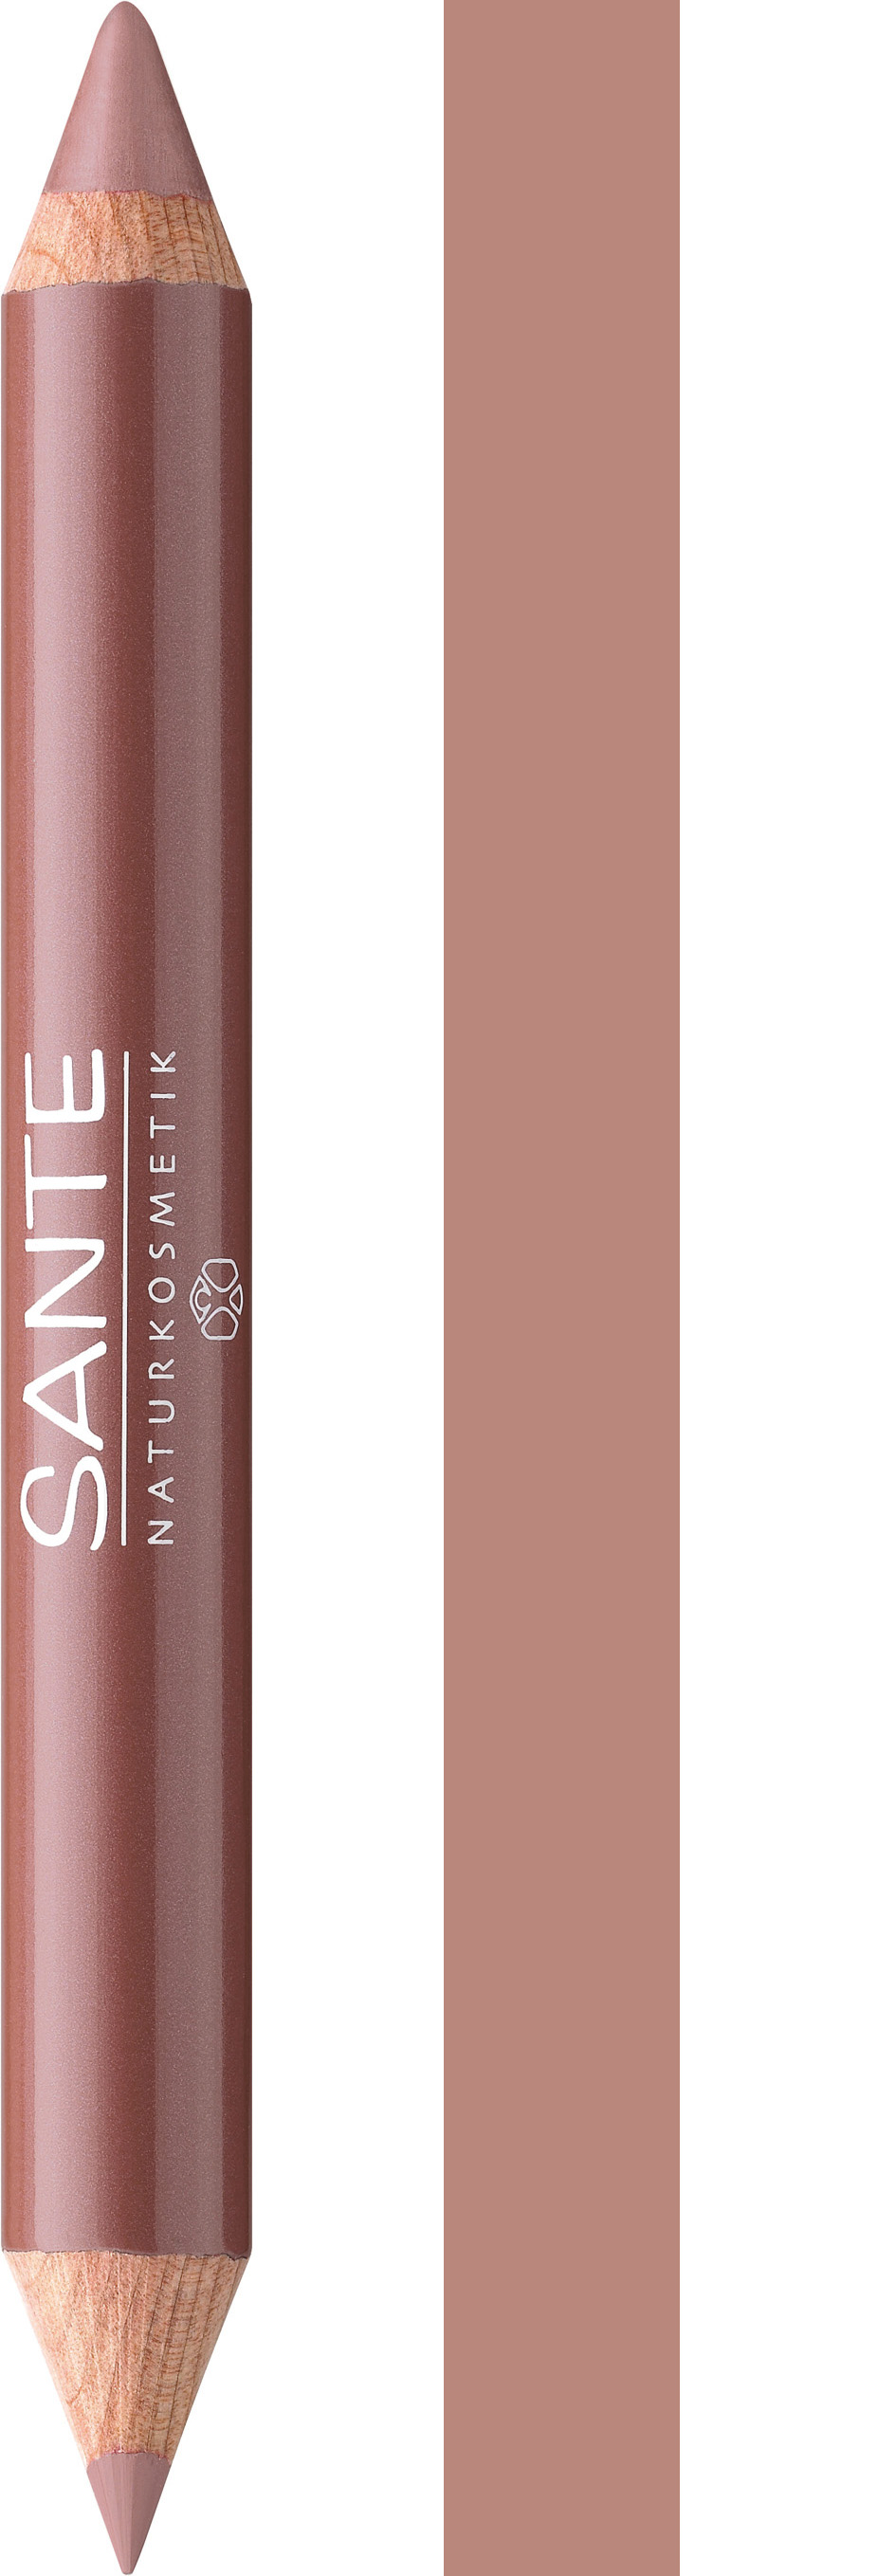 SANTE Duo Lip Contour No.01 nude look